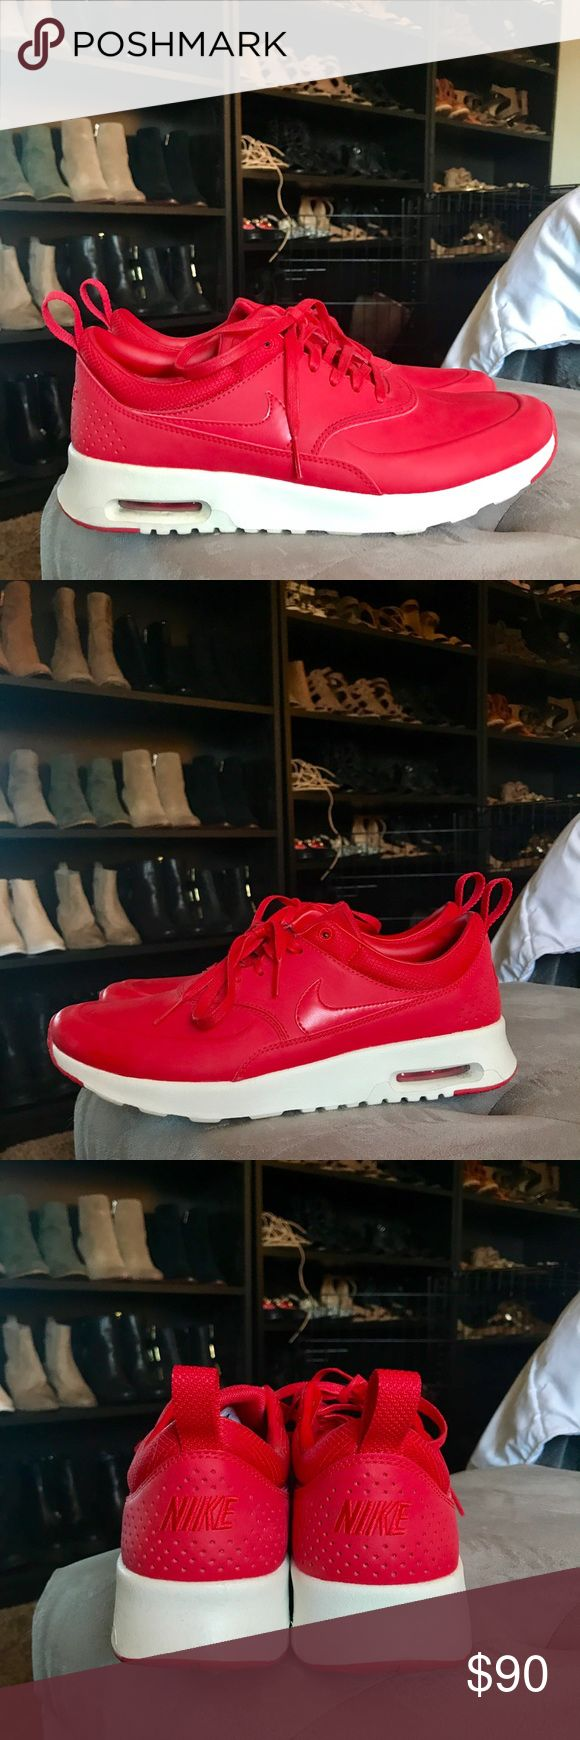 Nike Red Air Max Thea Premium Size 9 Nike air max Thea premium in red size 9. Worn twice, great condition. Nike Shoes Sneakers